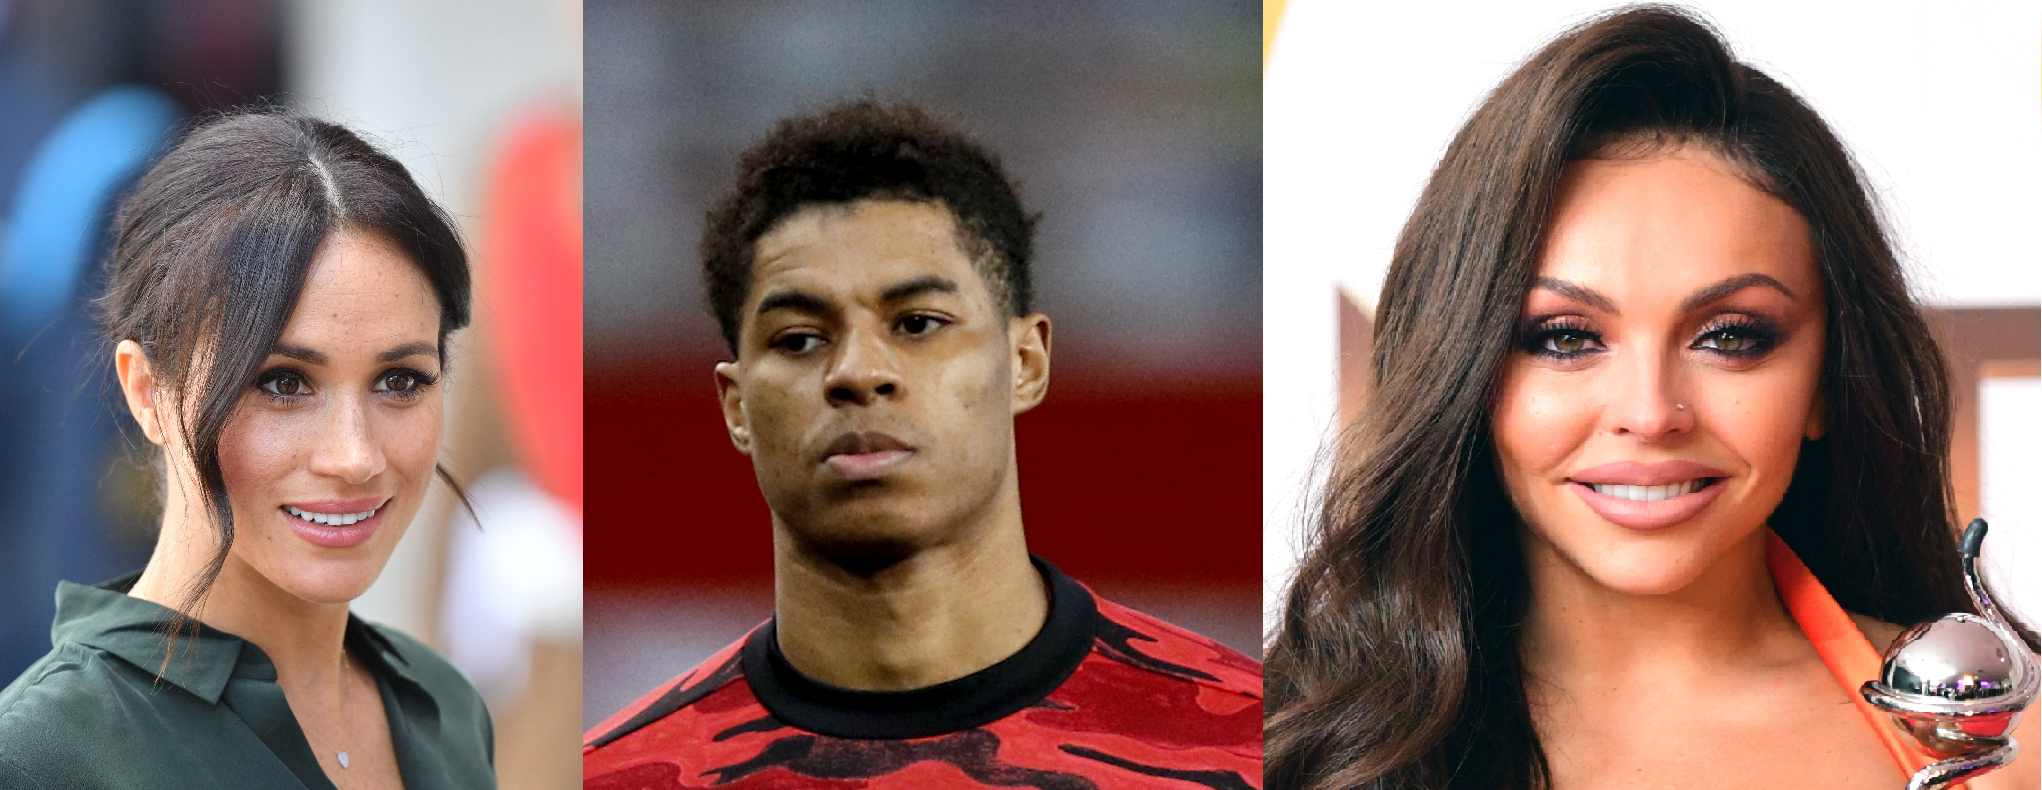 The Duchess of Sussex, Marcus Rashford, and Jesy Nelson have all been subject to online abuse (Dominic Lipinski, Phil Noble, Ian West/PA composite)